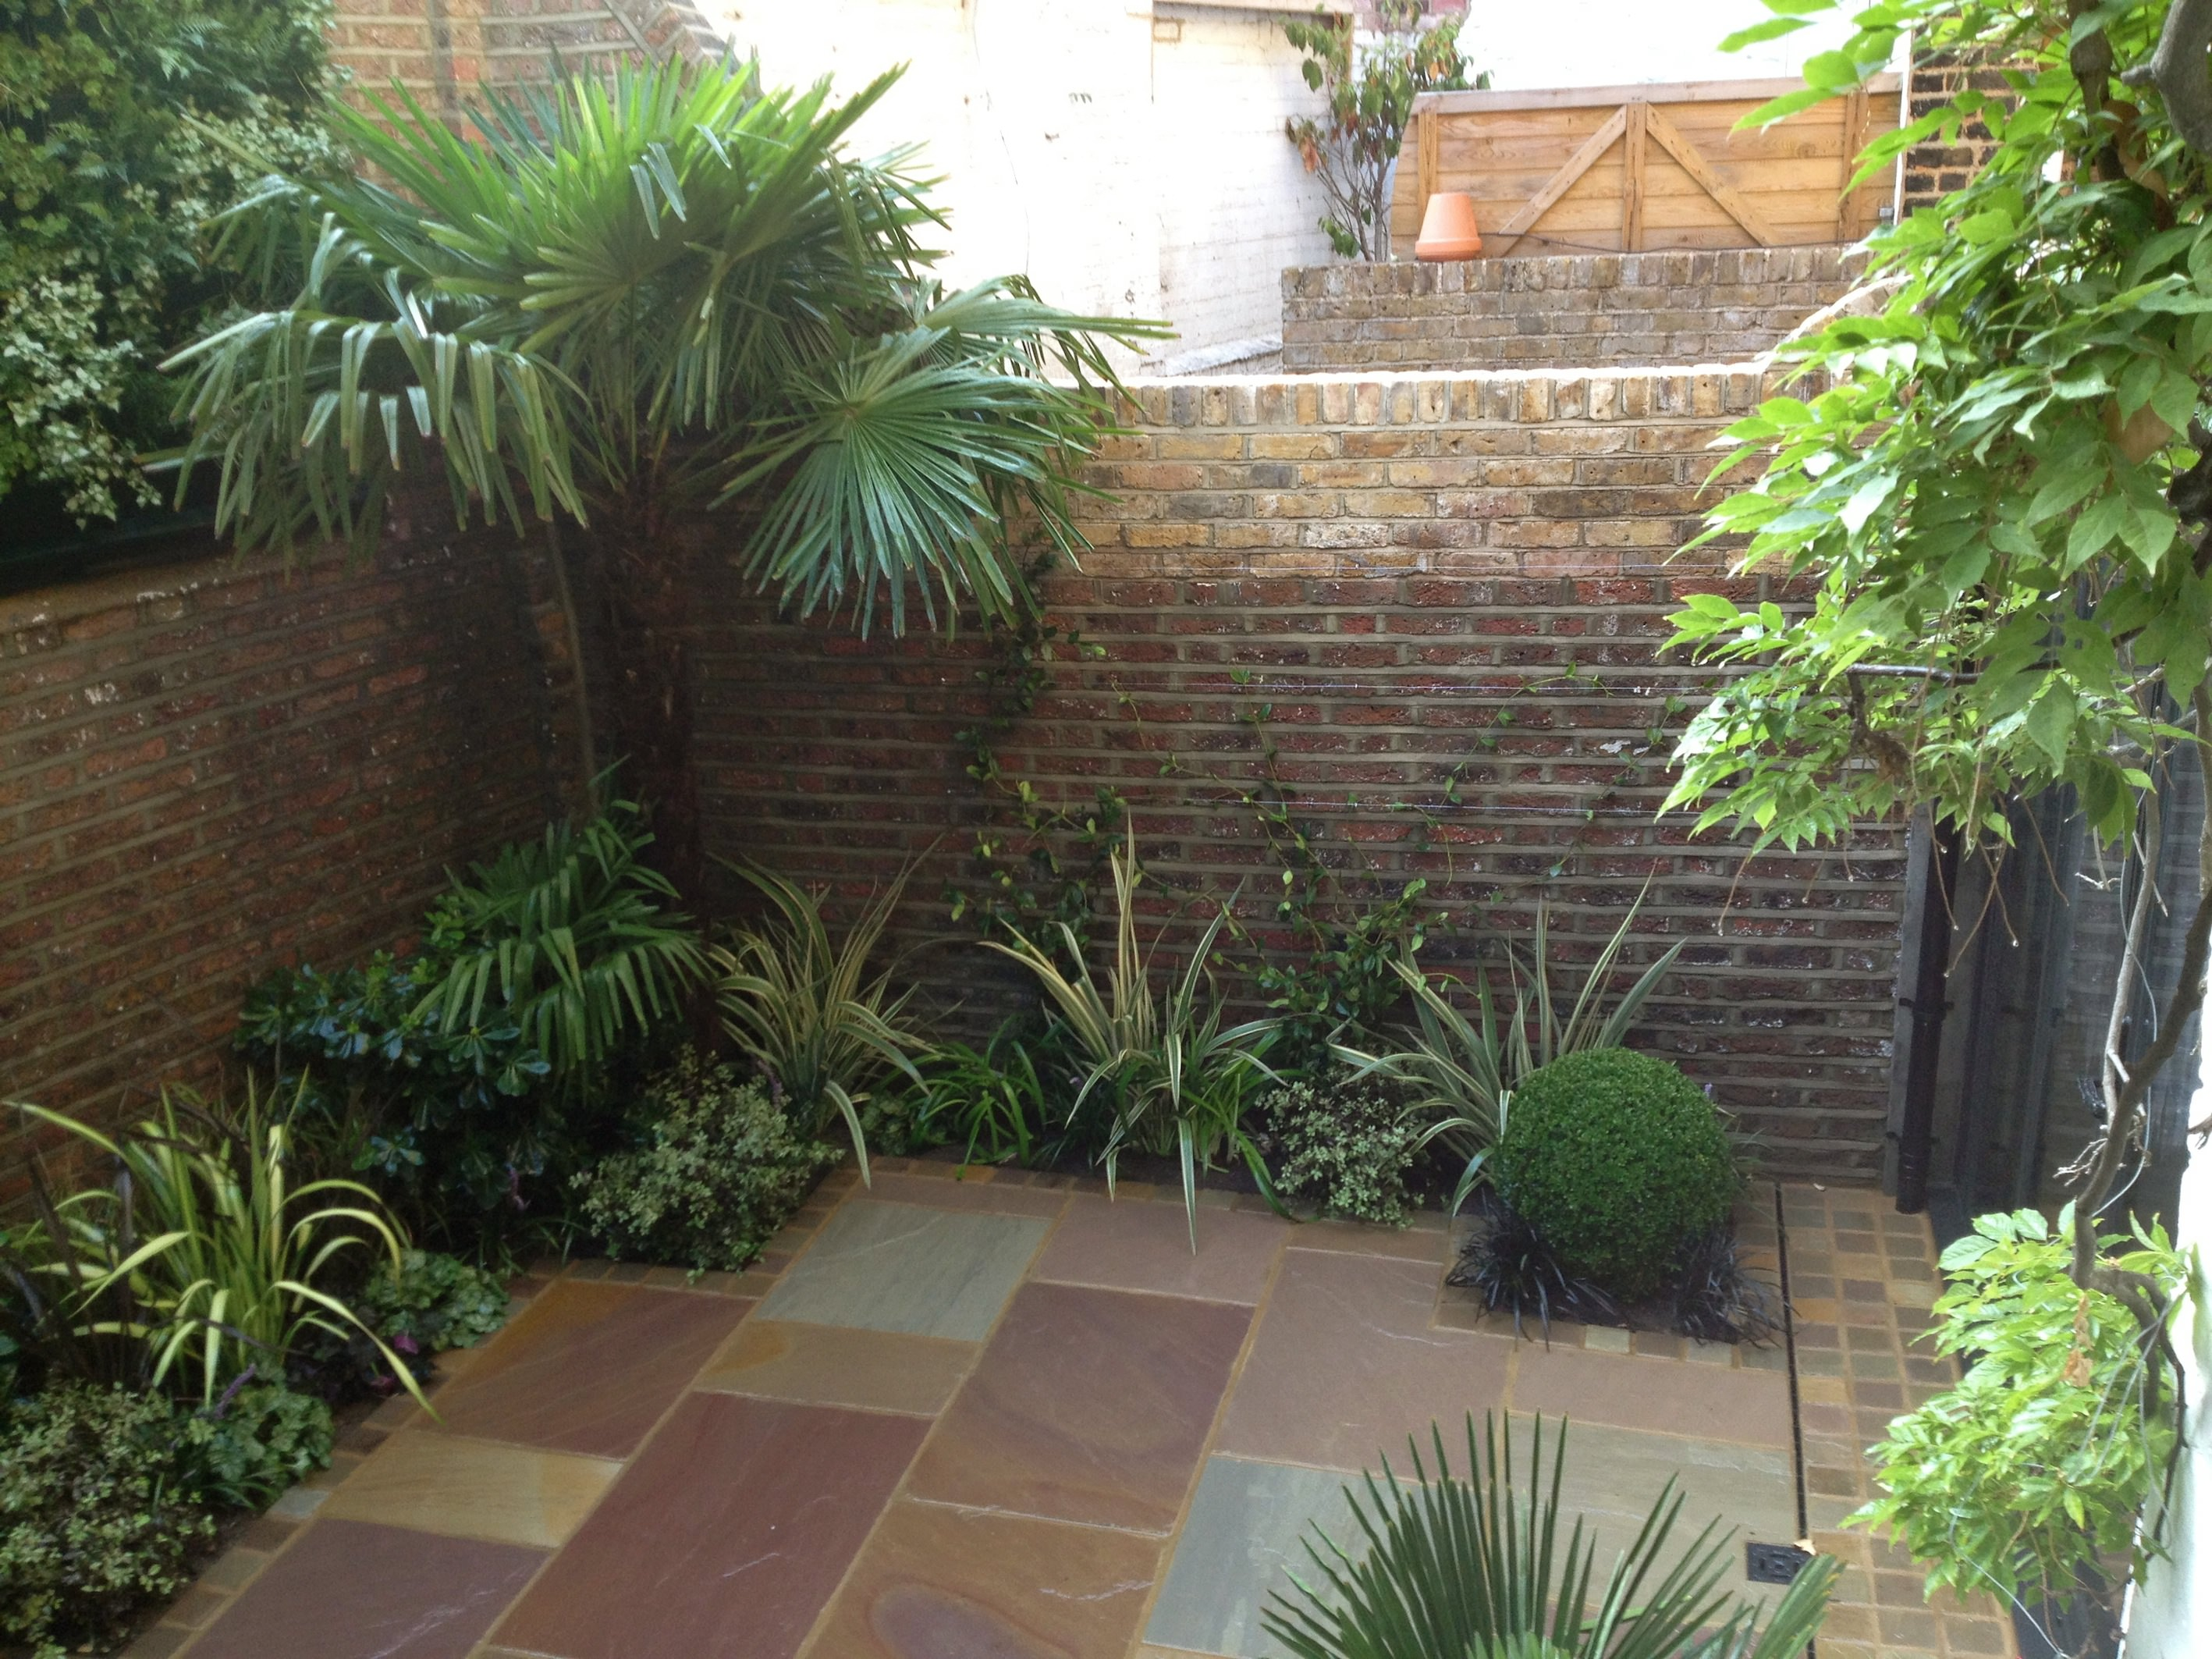 Low maintenance garden designs garden club london for Very small courtyard ideas